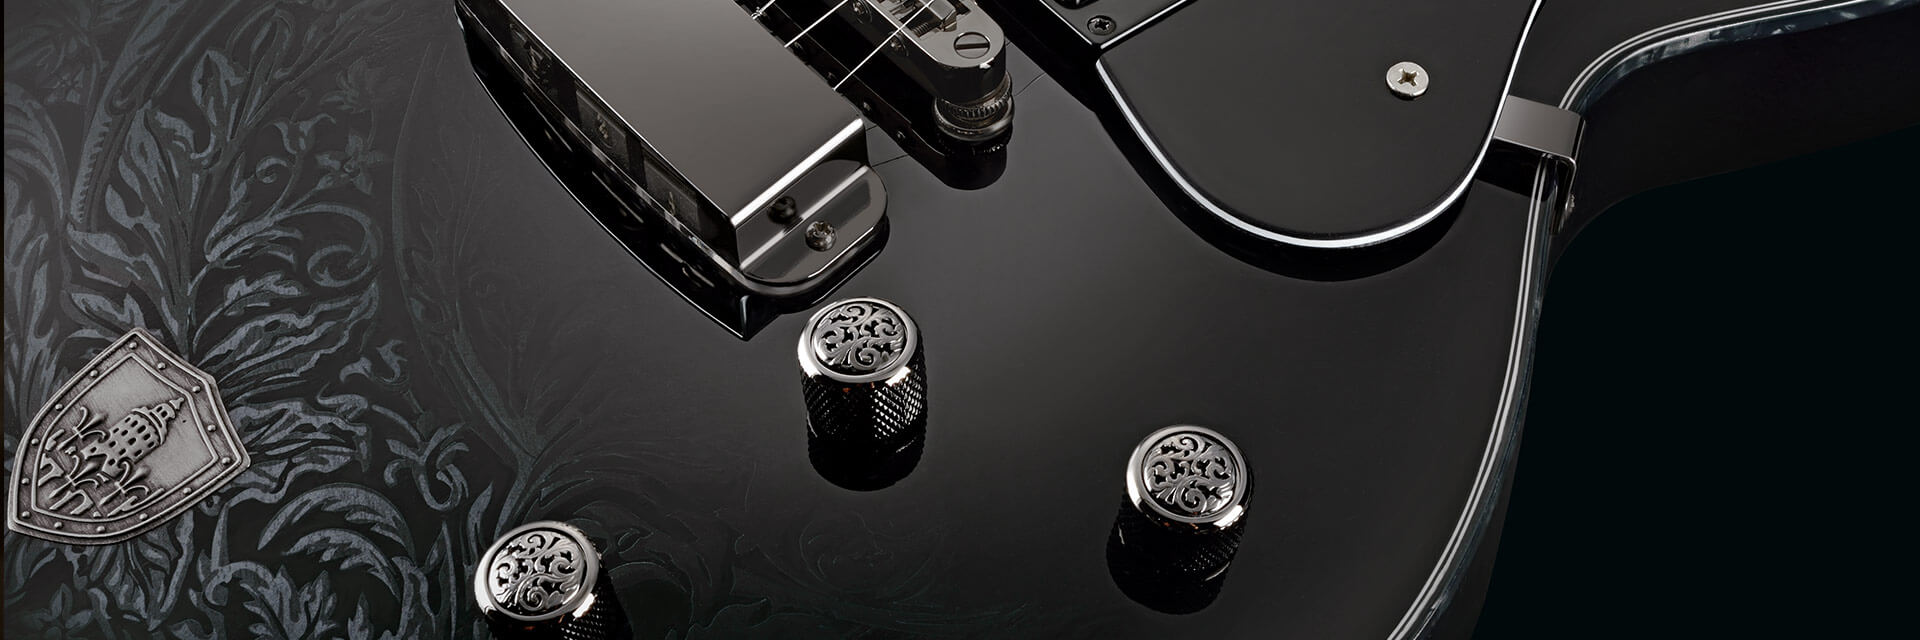 Hagstrom Three Kings Slider